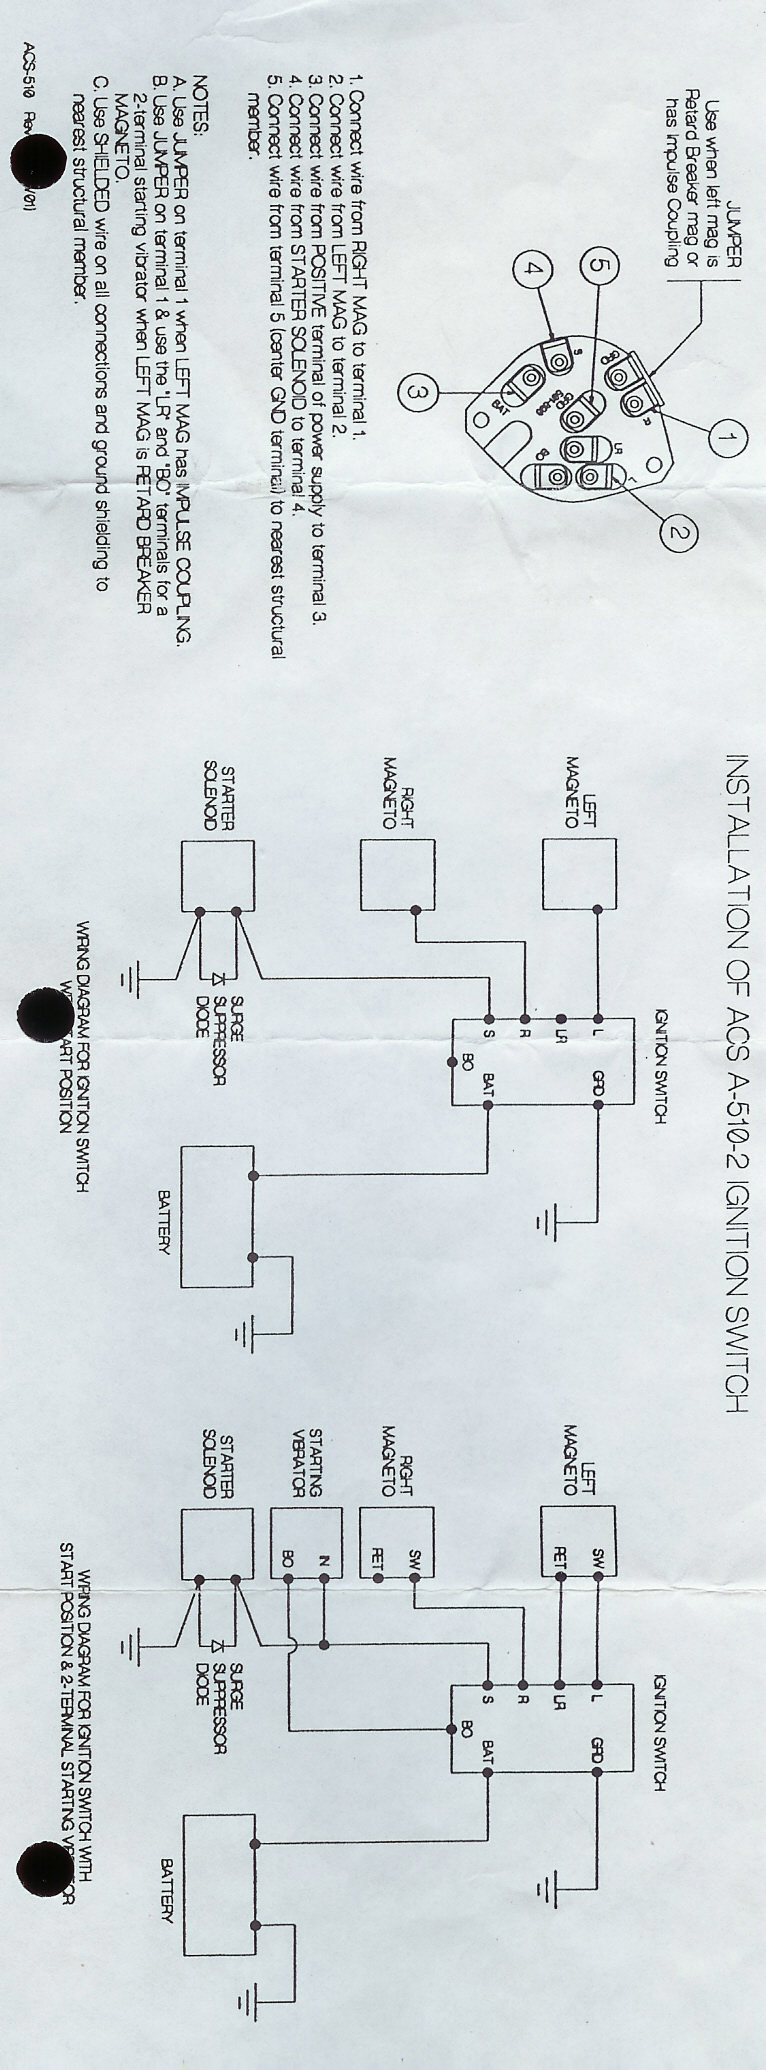 Magneto Wiring Diagram : Fairbanks morse magneto diagram logo